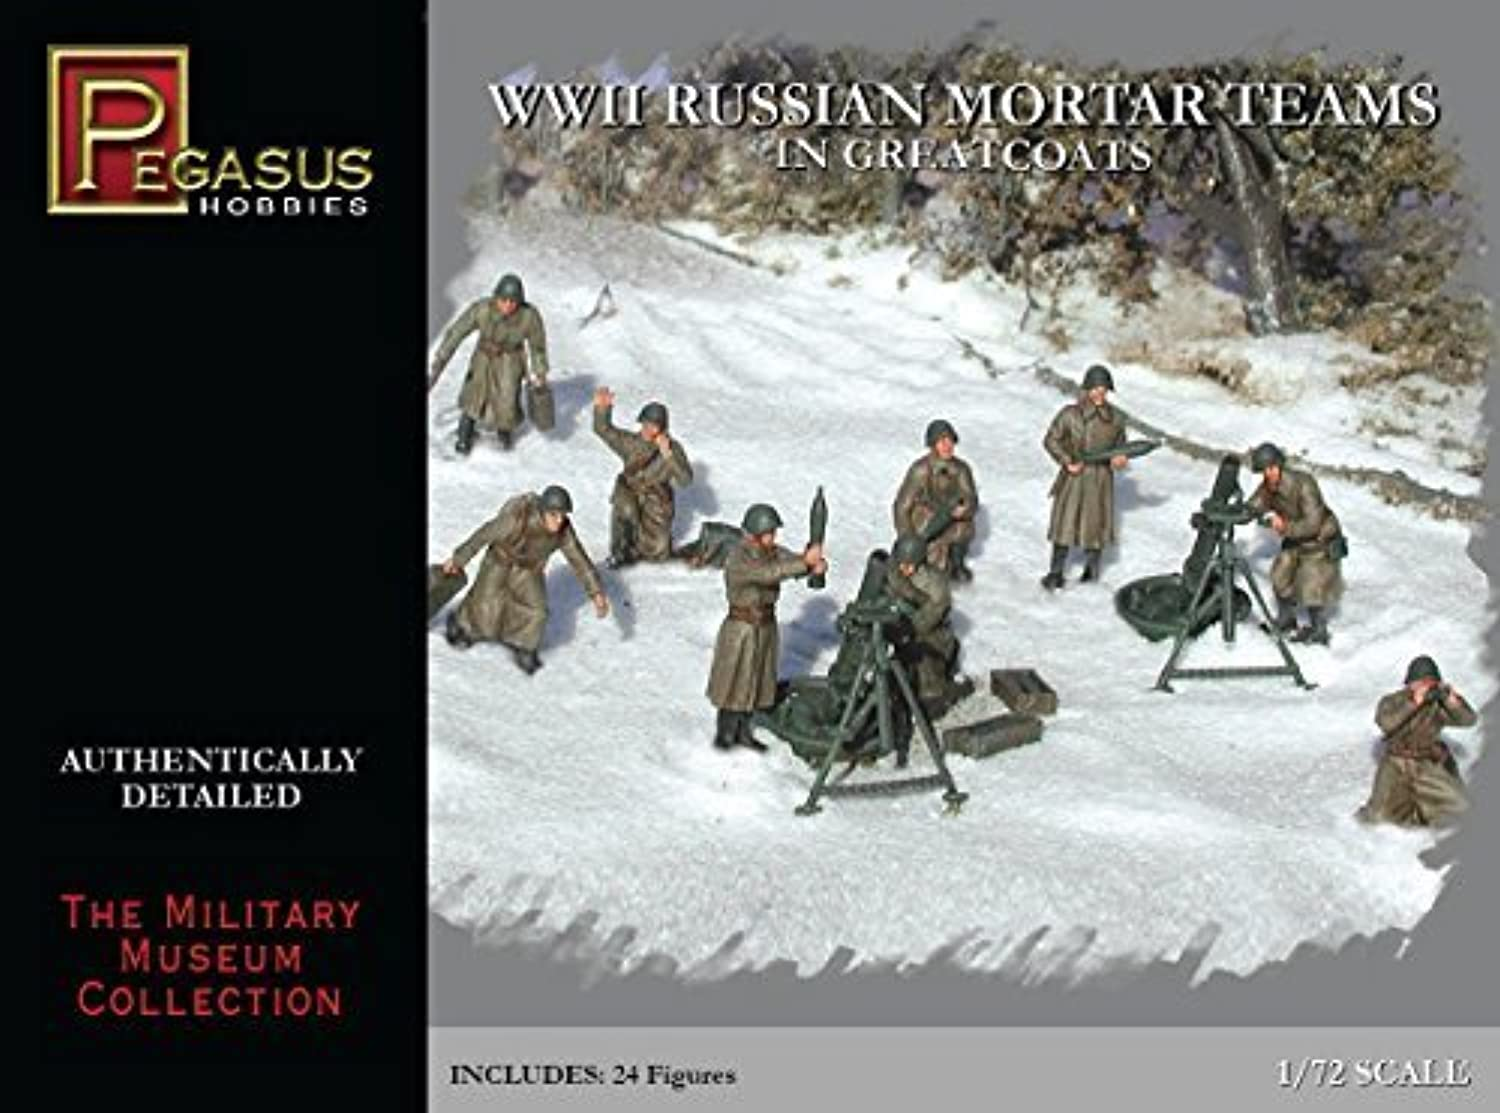 1 72 WWII Russian Mortar Teams in Greatcoats by Pegasus Hobby